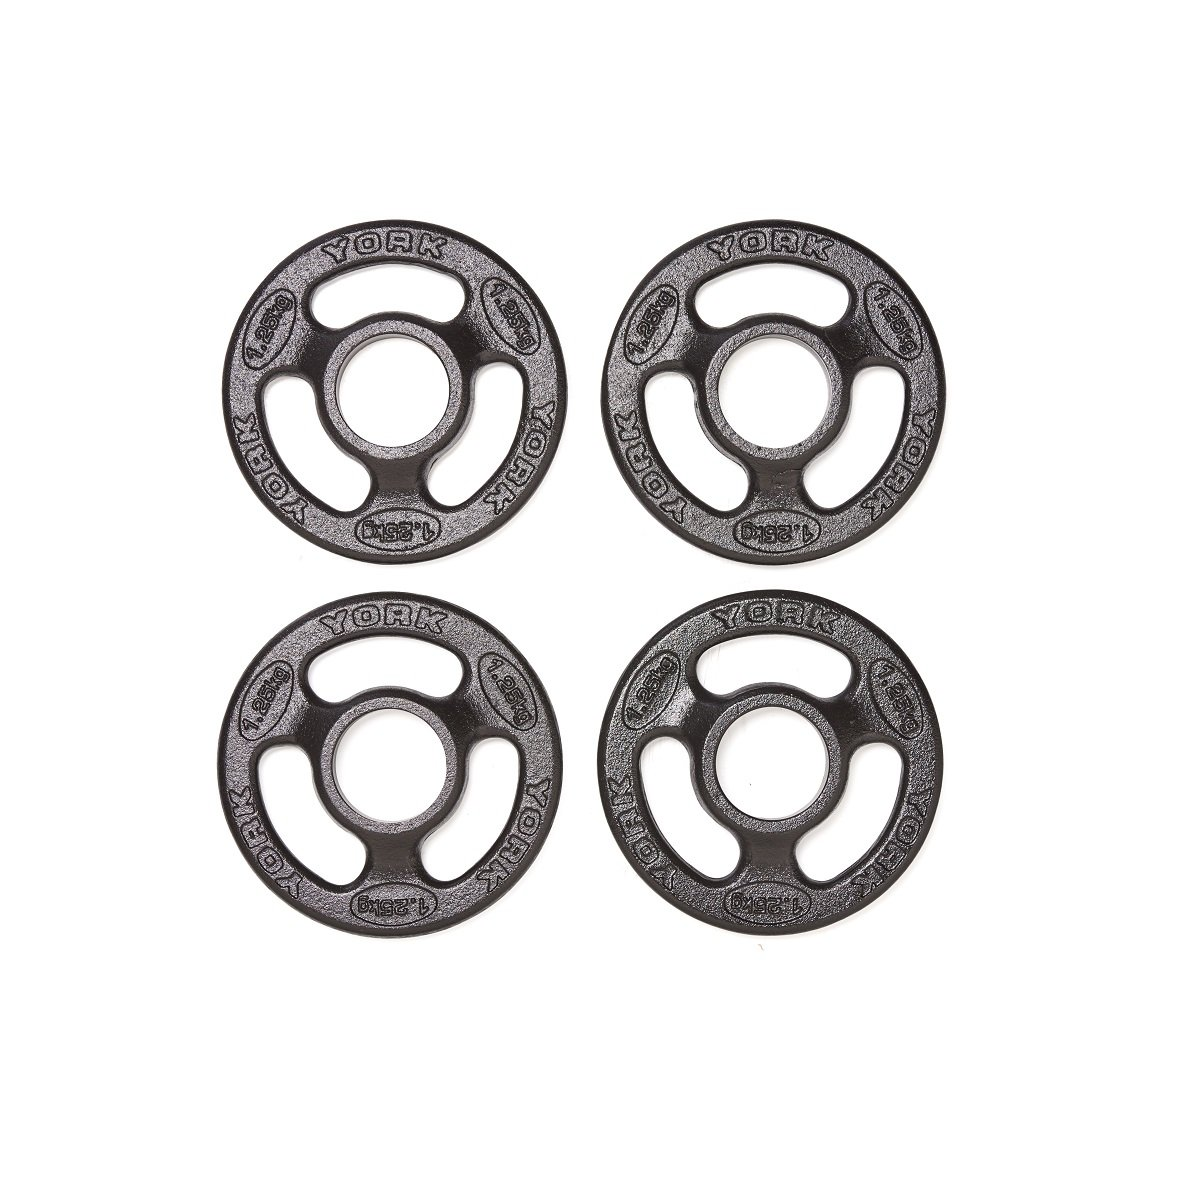 York Barbell Iso Grip Cast Iron Olympic Weight Plates